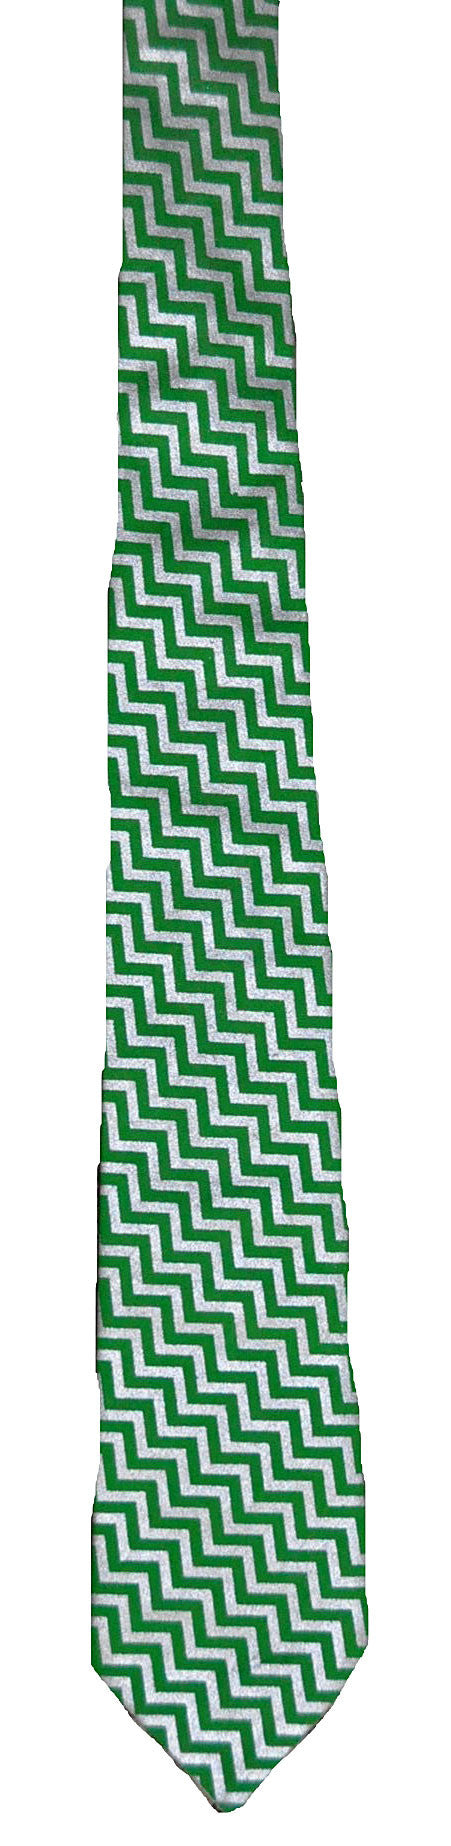 Green with Silver Chevron - Handmade Men's Necktie